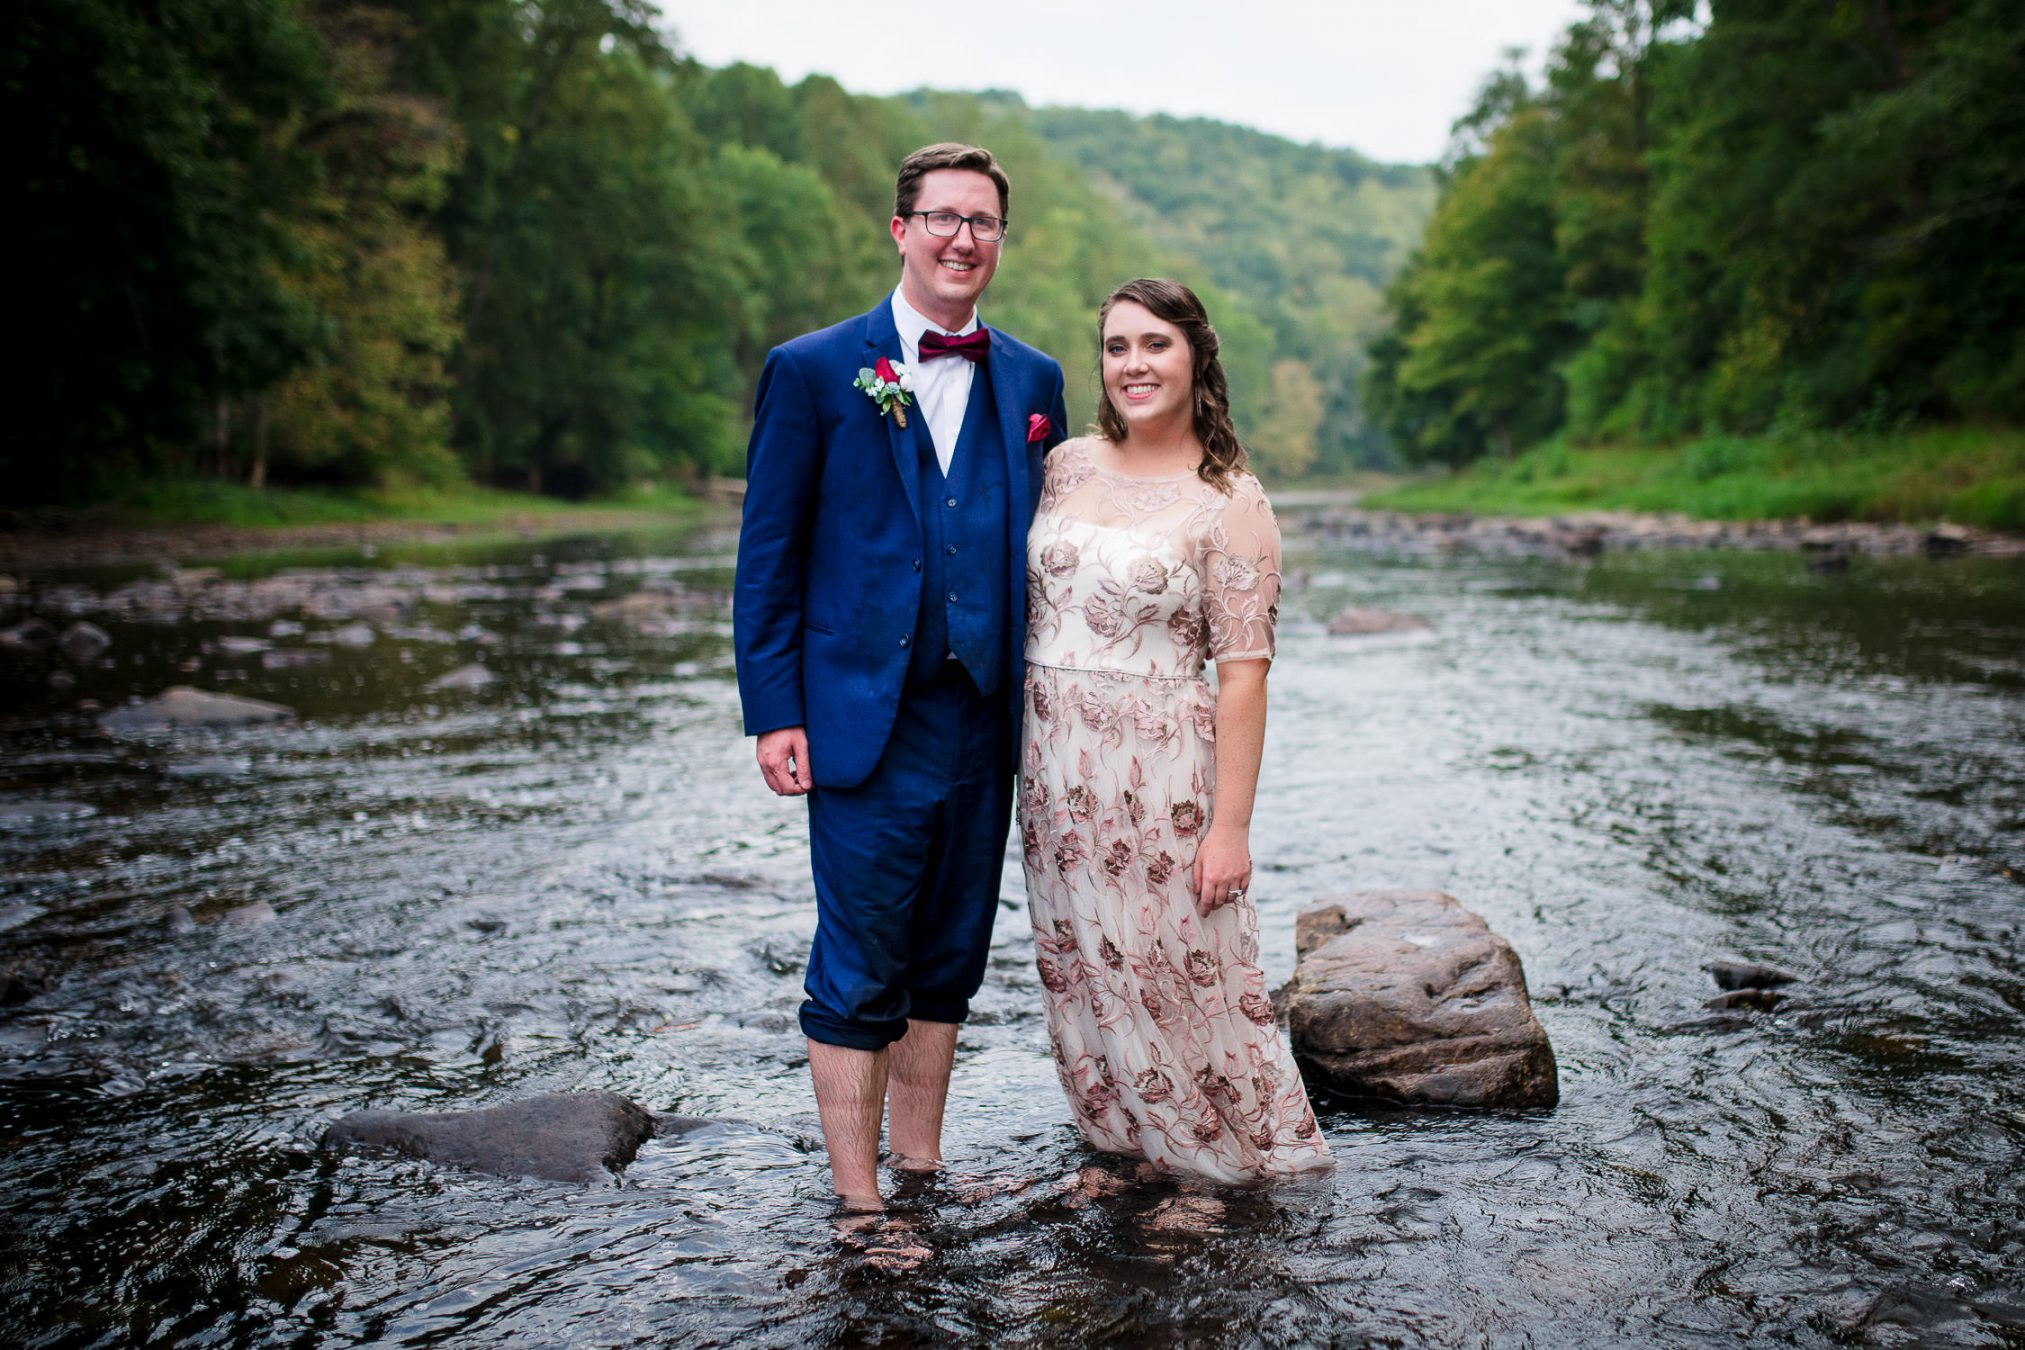 bride and groom married in river